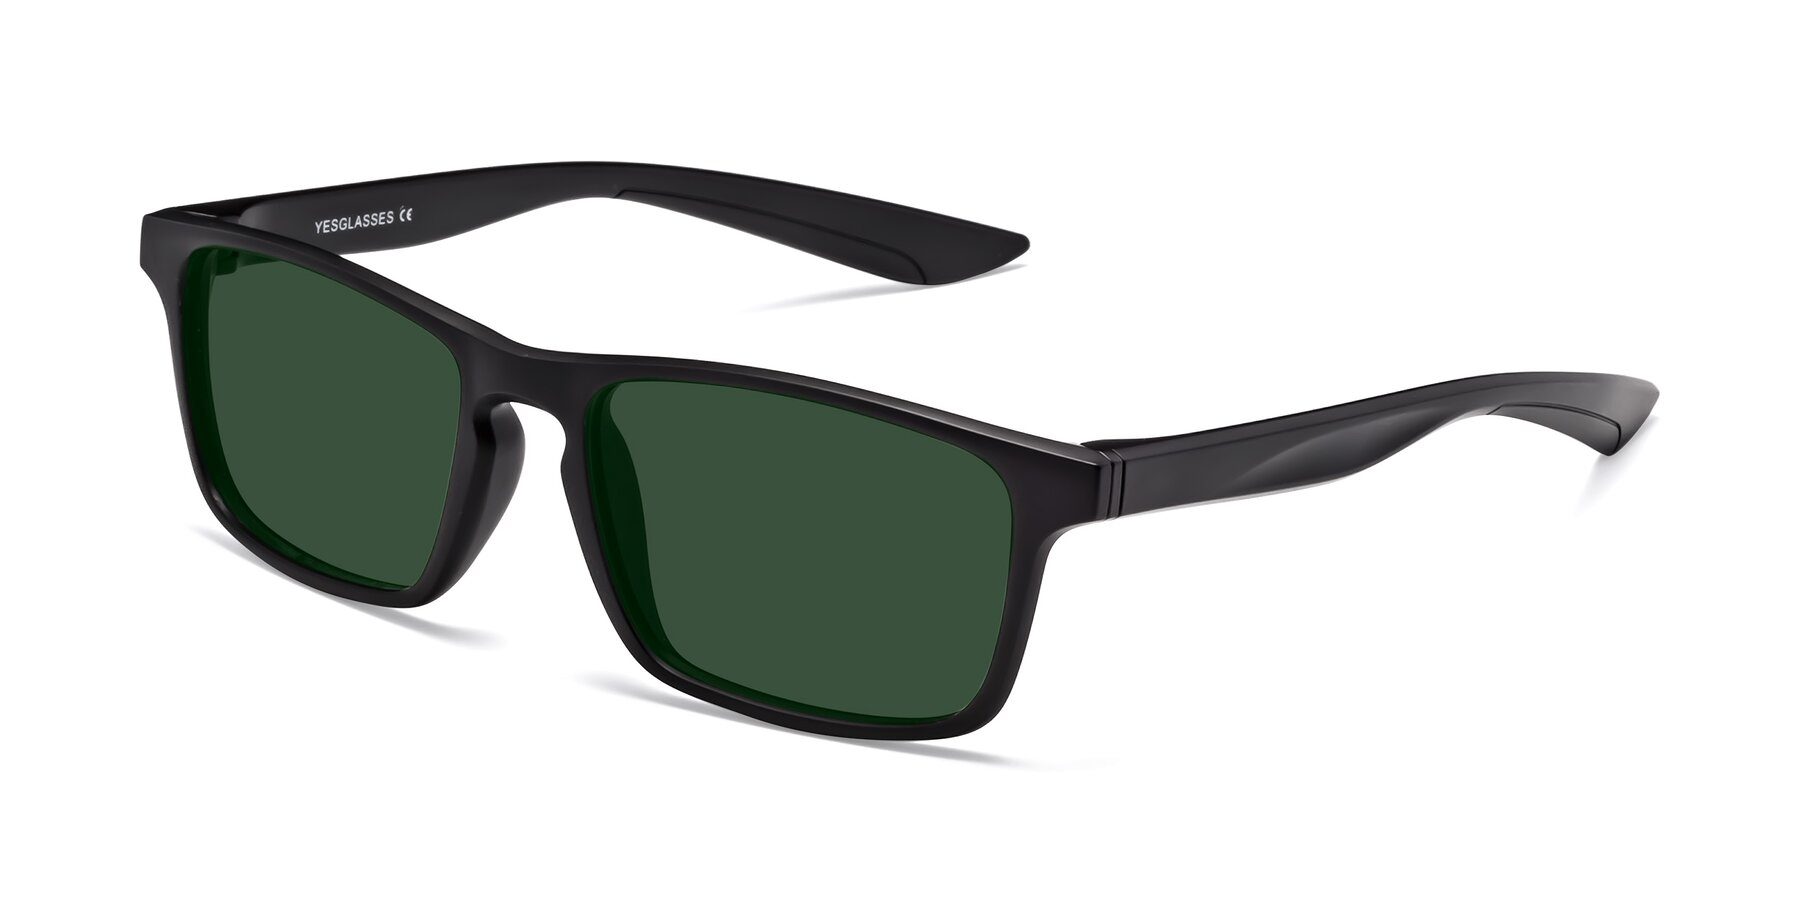 Angle of Passion in Matte Black with Green Tinted Lenses